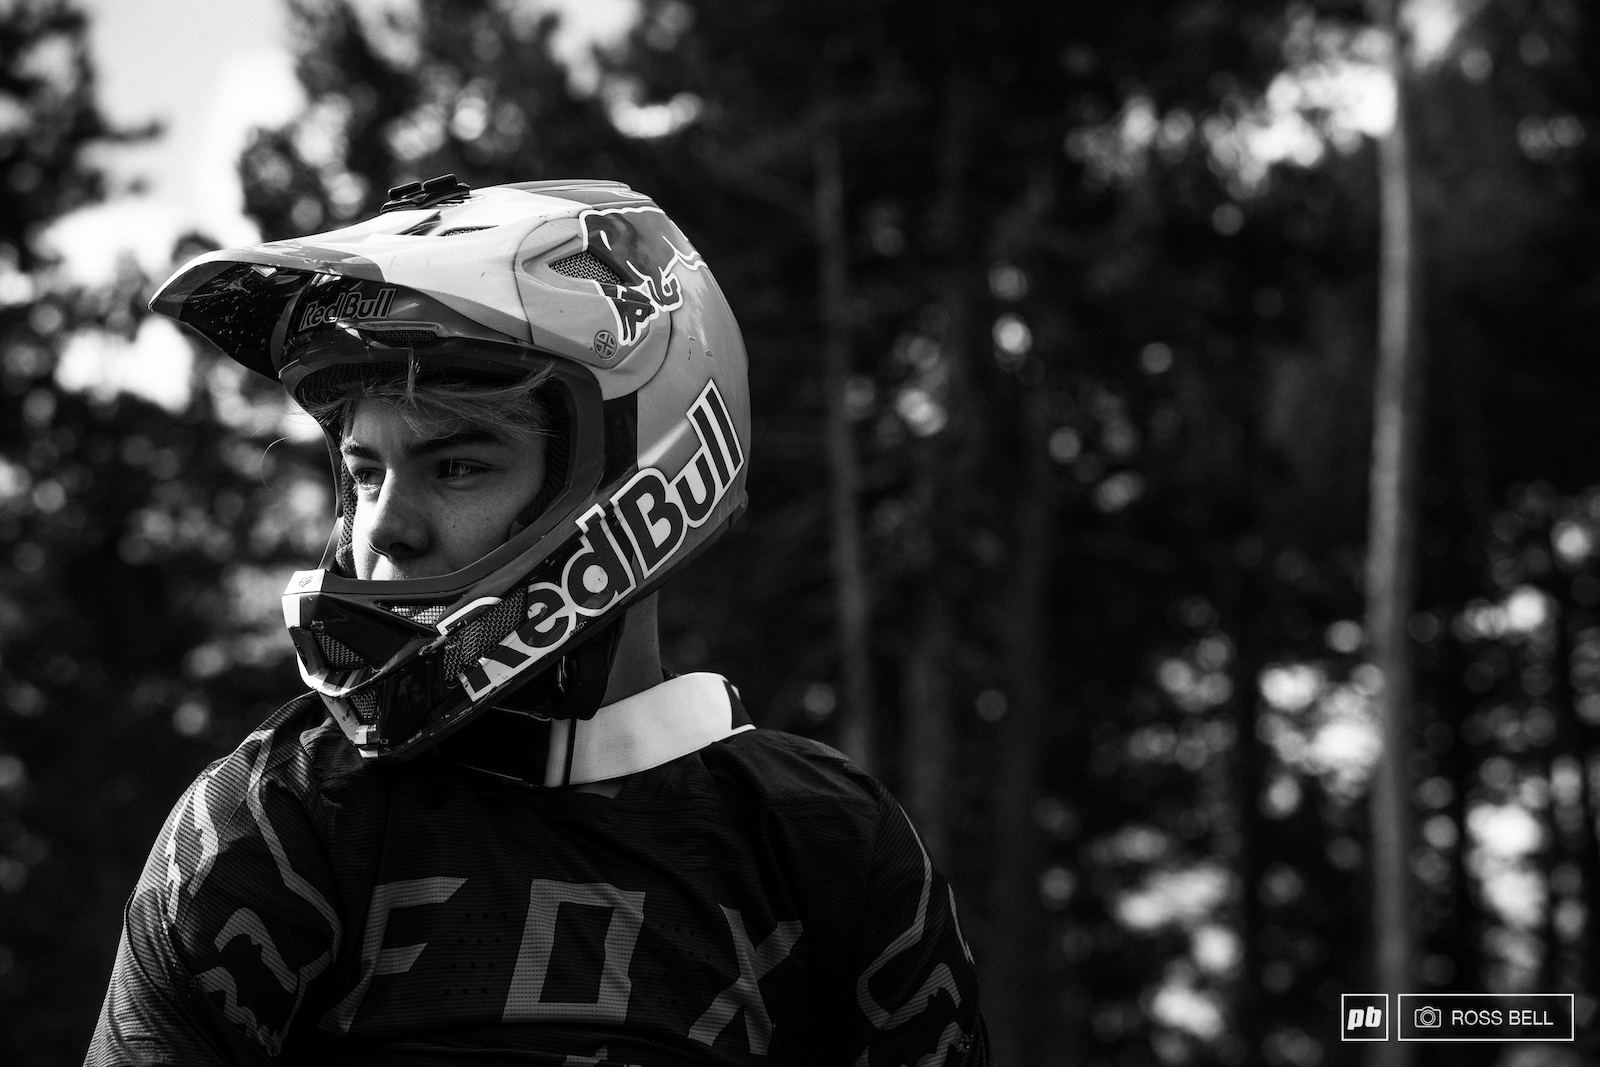 Finn Iles catches his breath and regains focus after a lairy moment in the open berms.